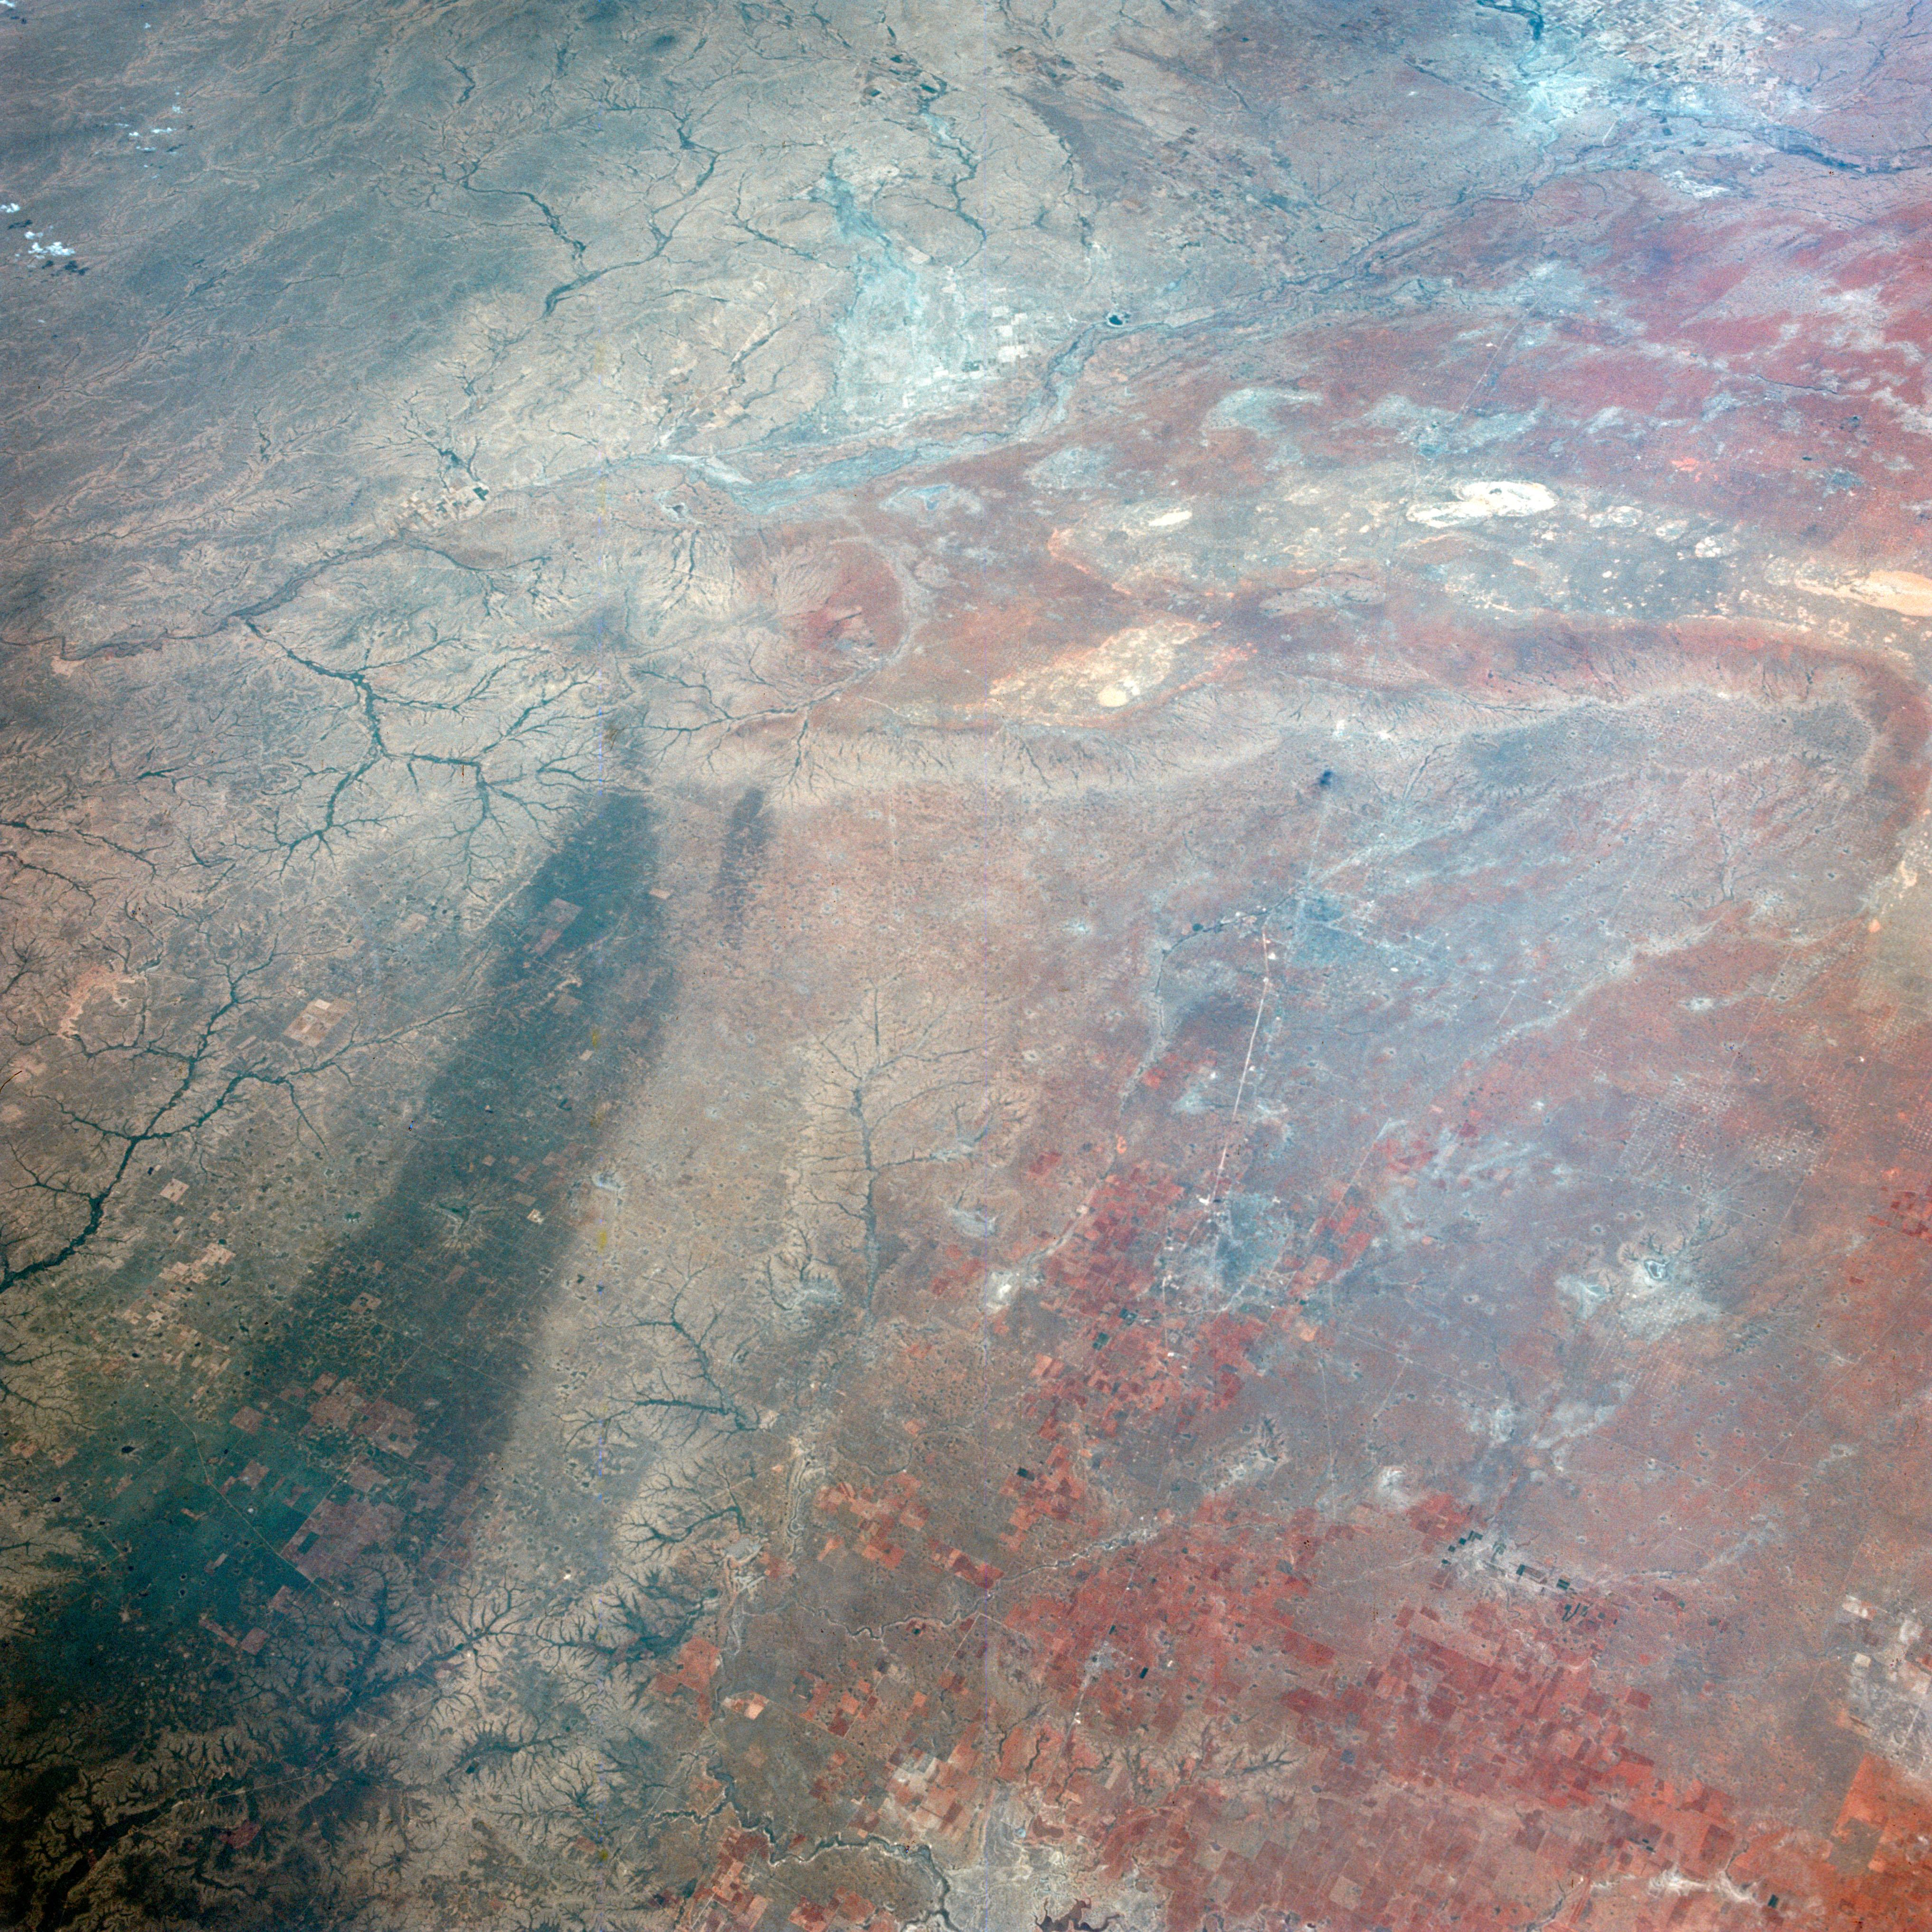 This image of Texas, obtained by astronauts aboard NASA's Gemini 4 spacecraft on June 5, 1965, shows a large dark swath attributed to rainfall.